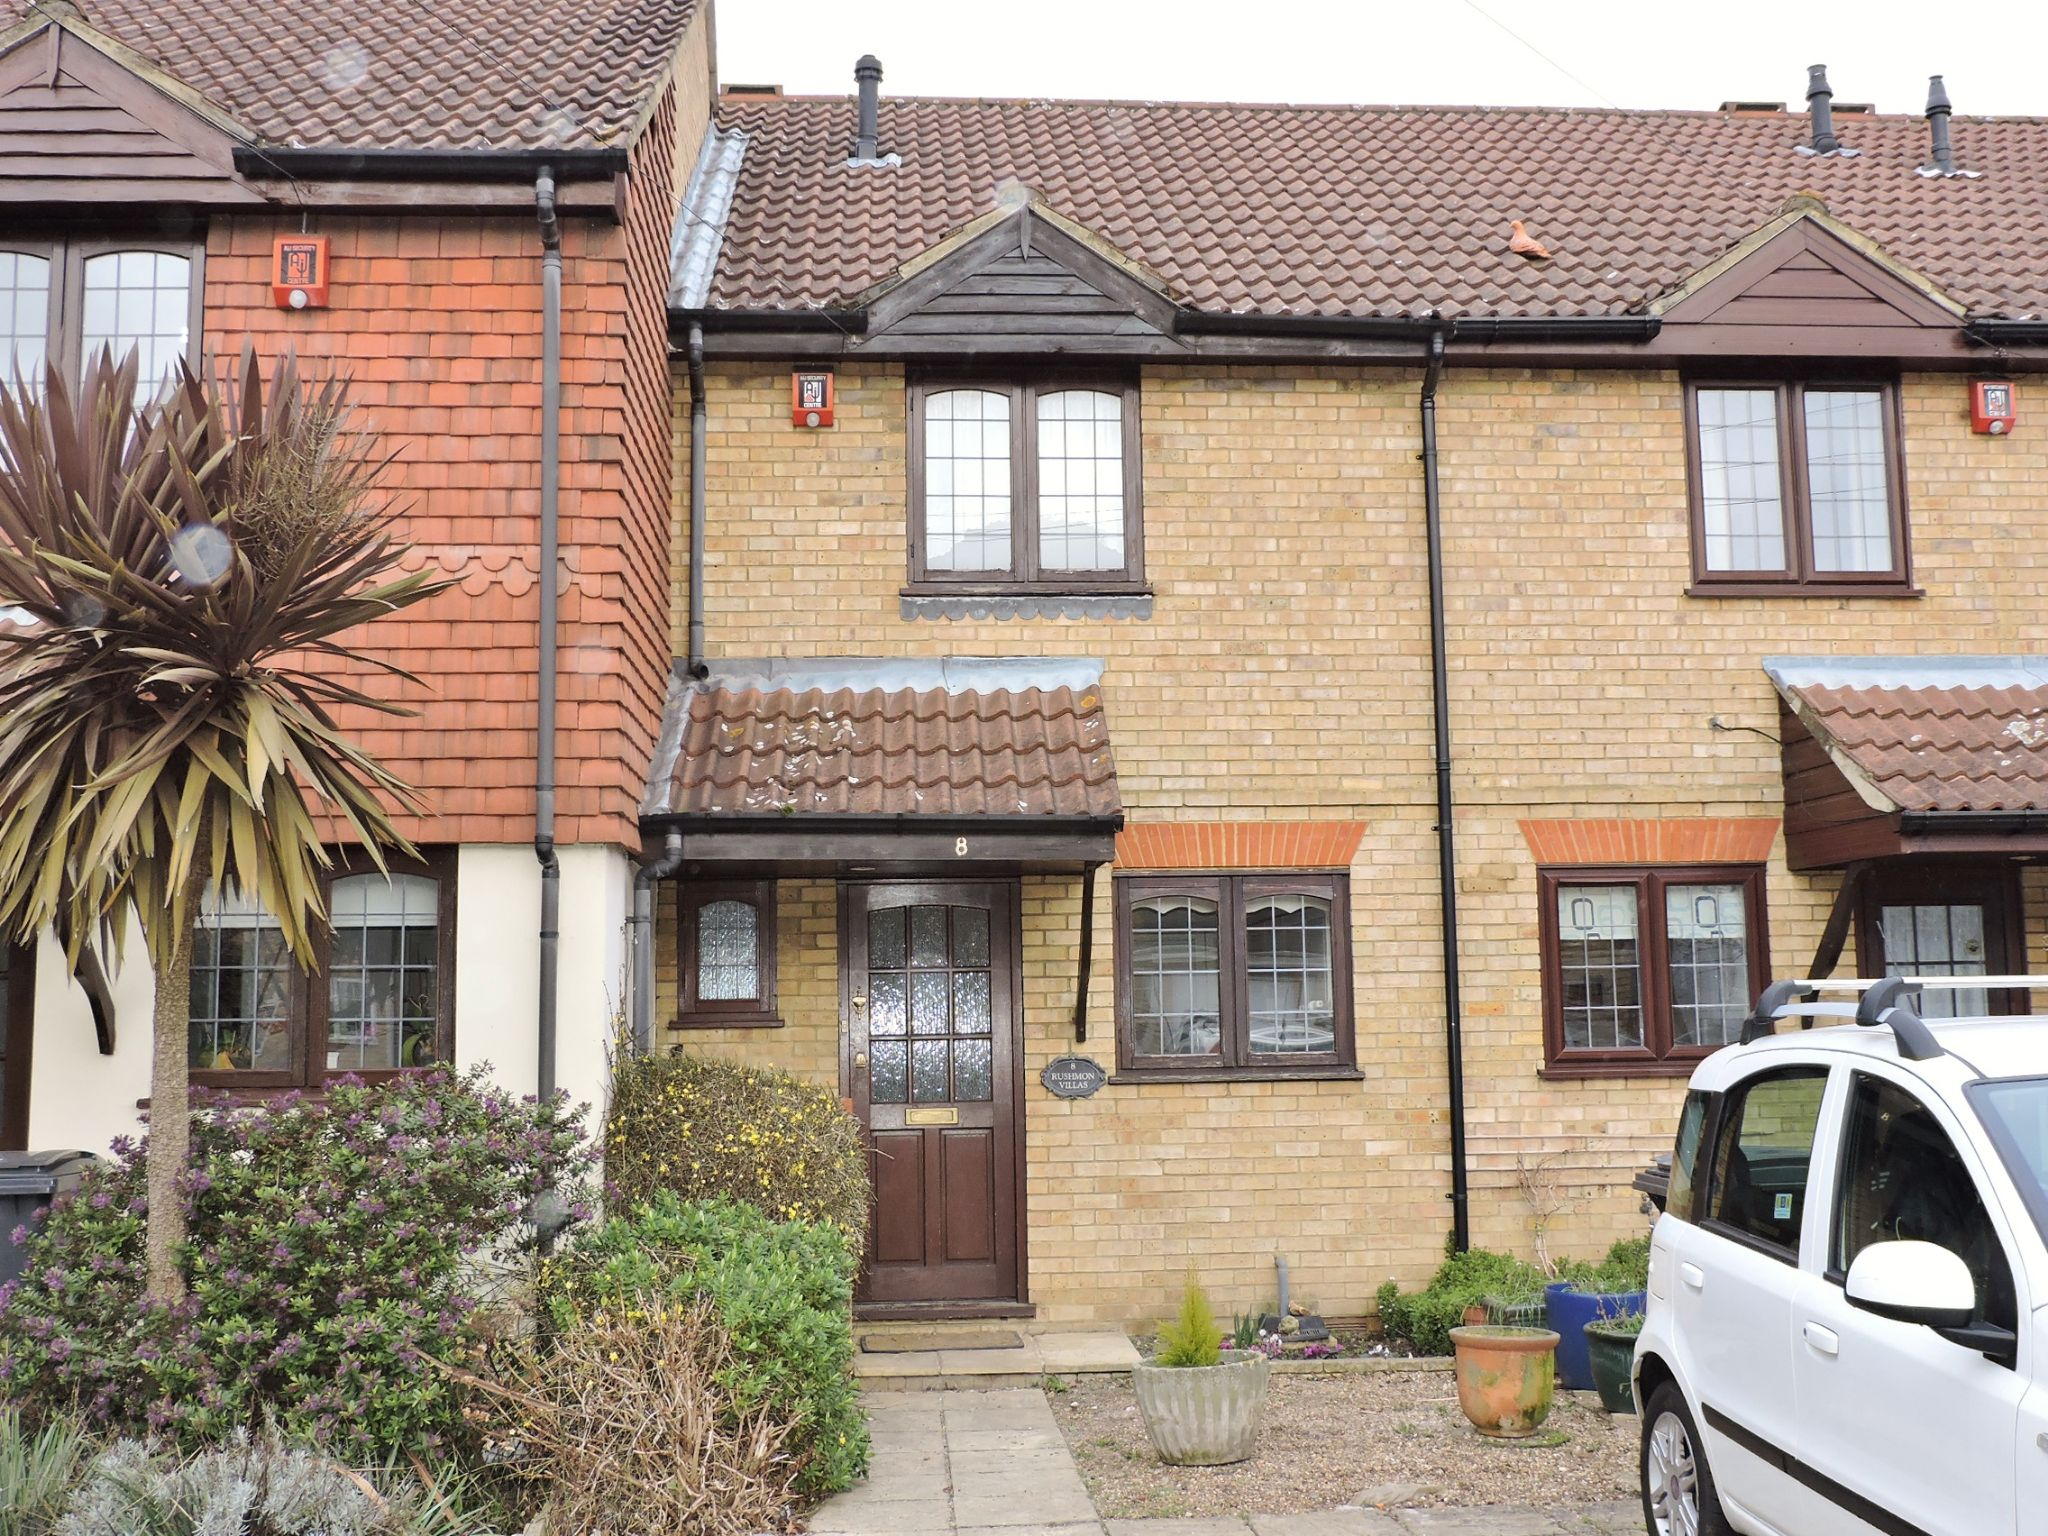 2 bedroom mid terraced house Let in New Malden - Photograph 1